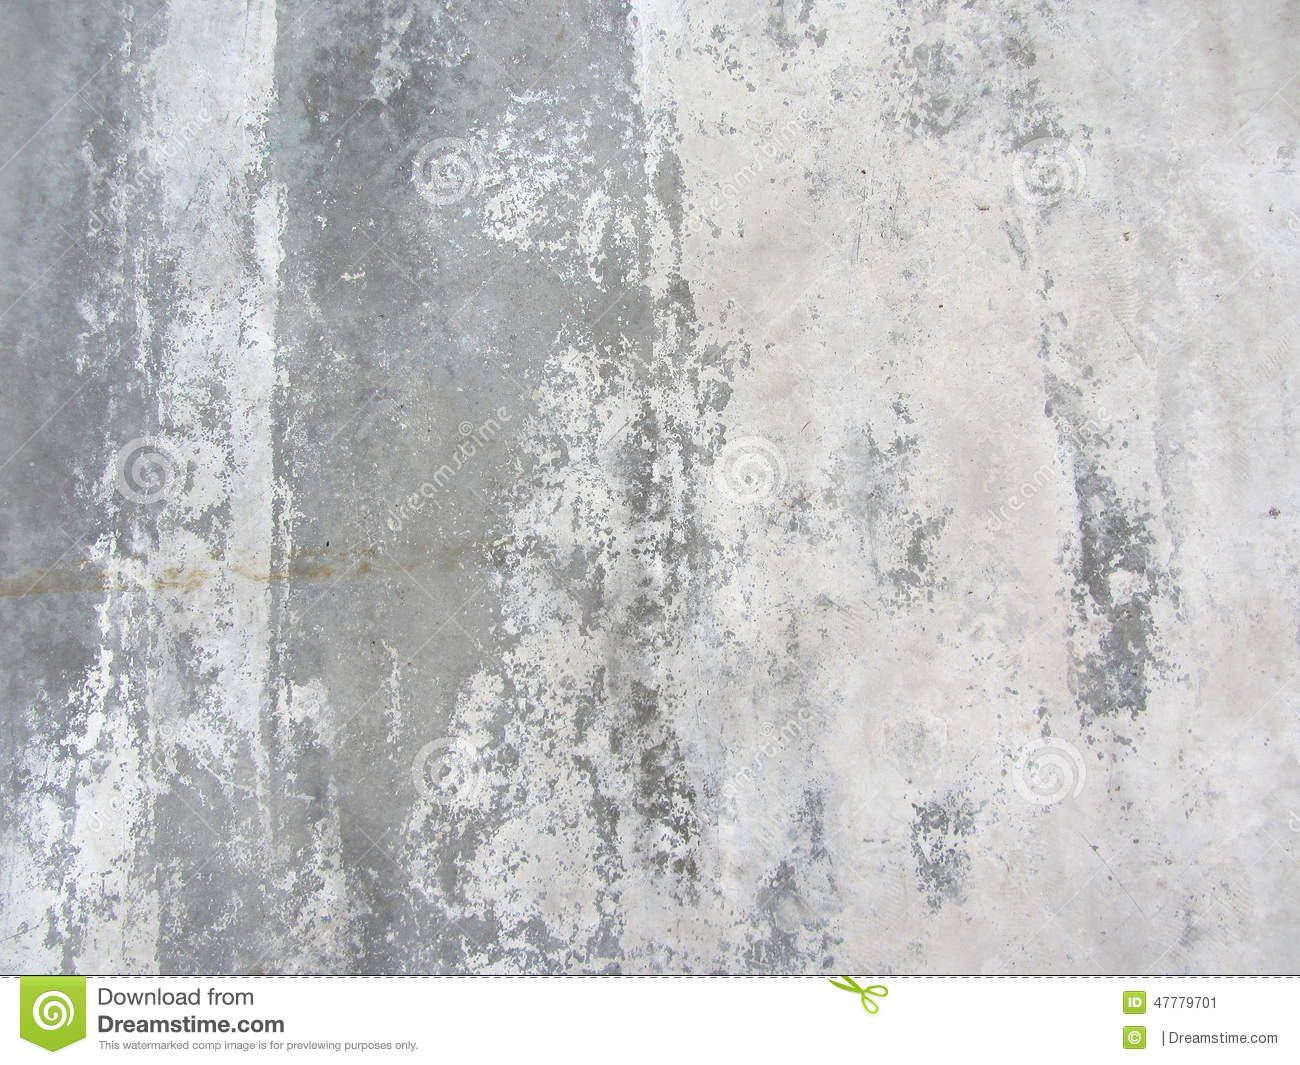 Gray Shades wallpaper shades of gray royalty free stock photography - image